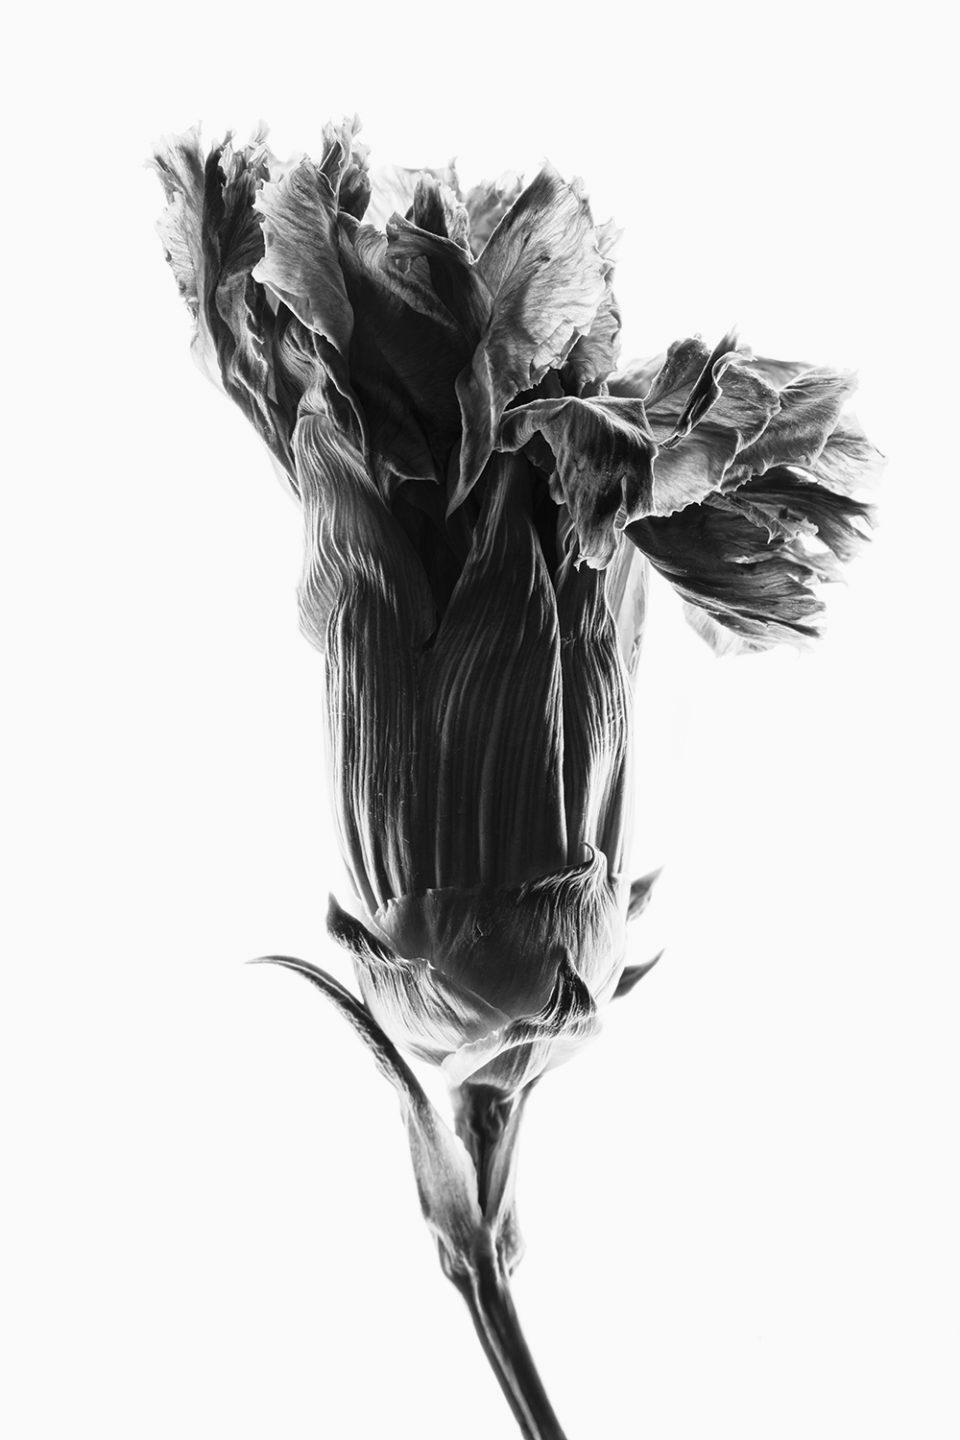 Dried Flower Bloom with Backlight, Black and White Photograph by Keith Dotson. Buy a fine art print.